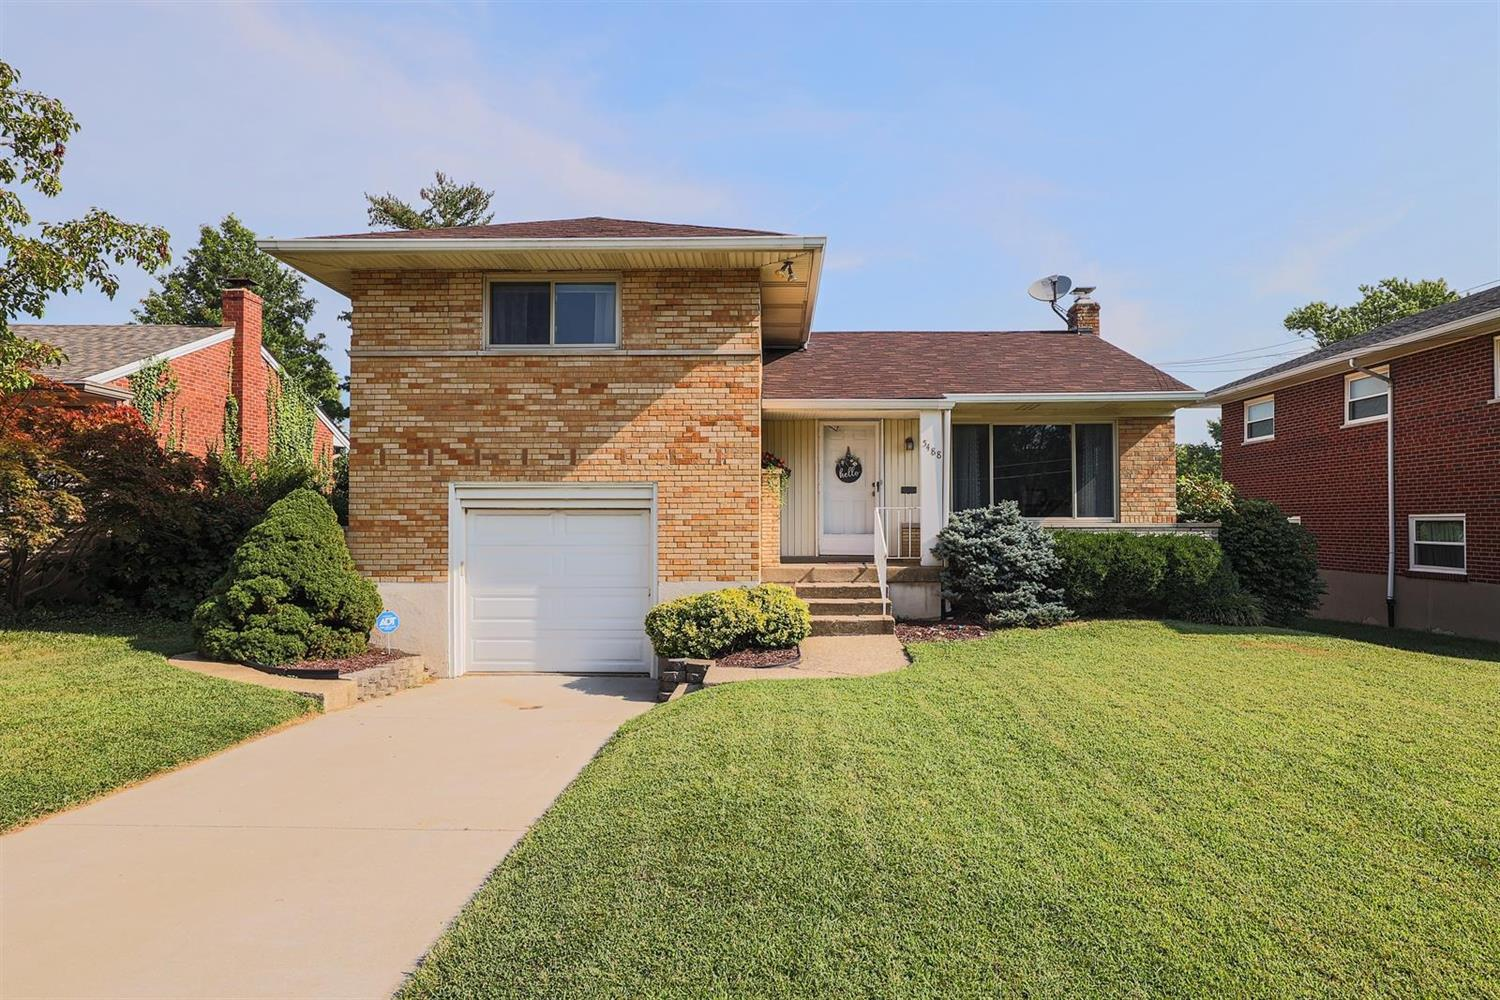 5488 Childs Avenue Green Twp. - Hamilton Co., OH